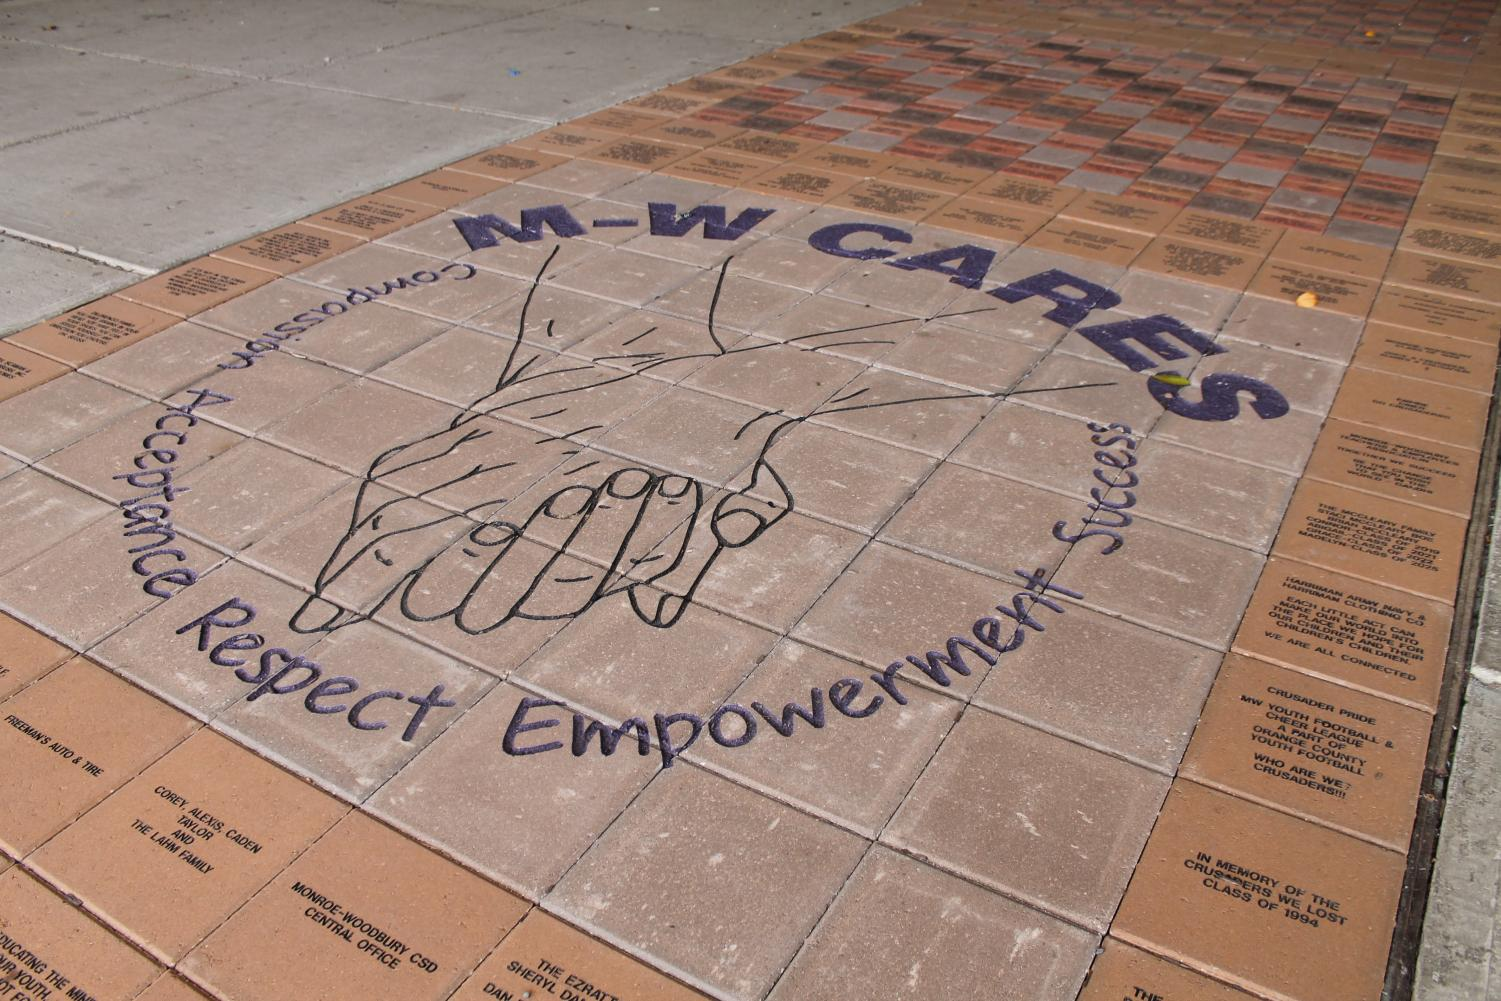 The new walkway out front sold personalized bricks as part of a fundraiser for M-W CARES.